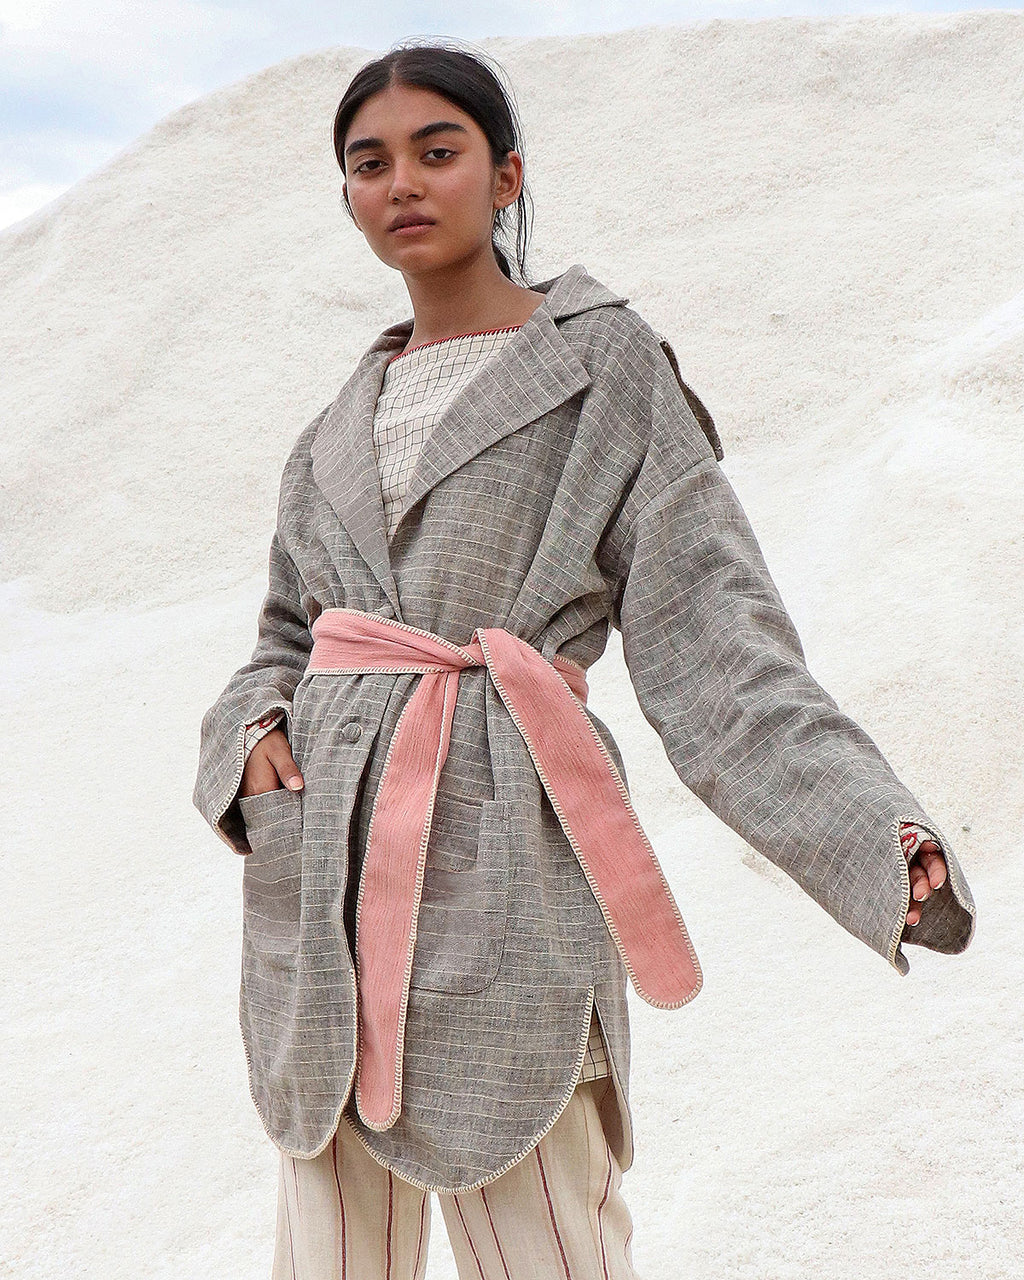 Prasuna Trench Coat - Auruhfy India